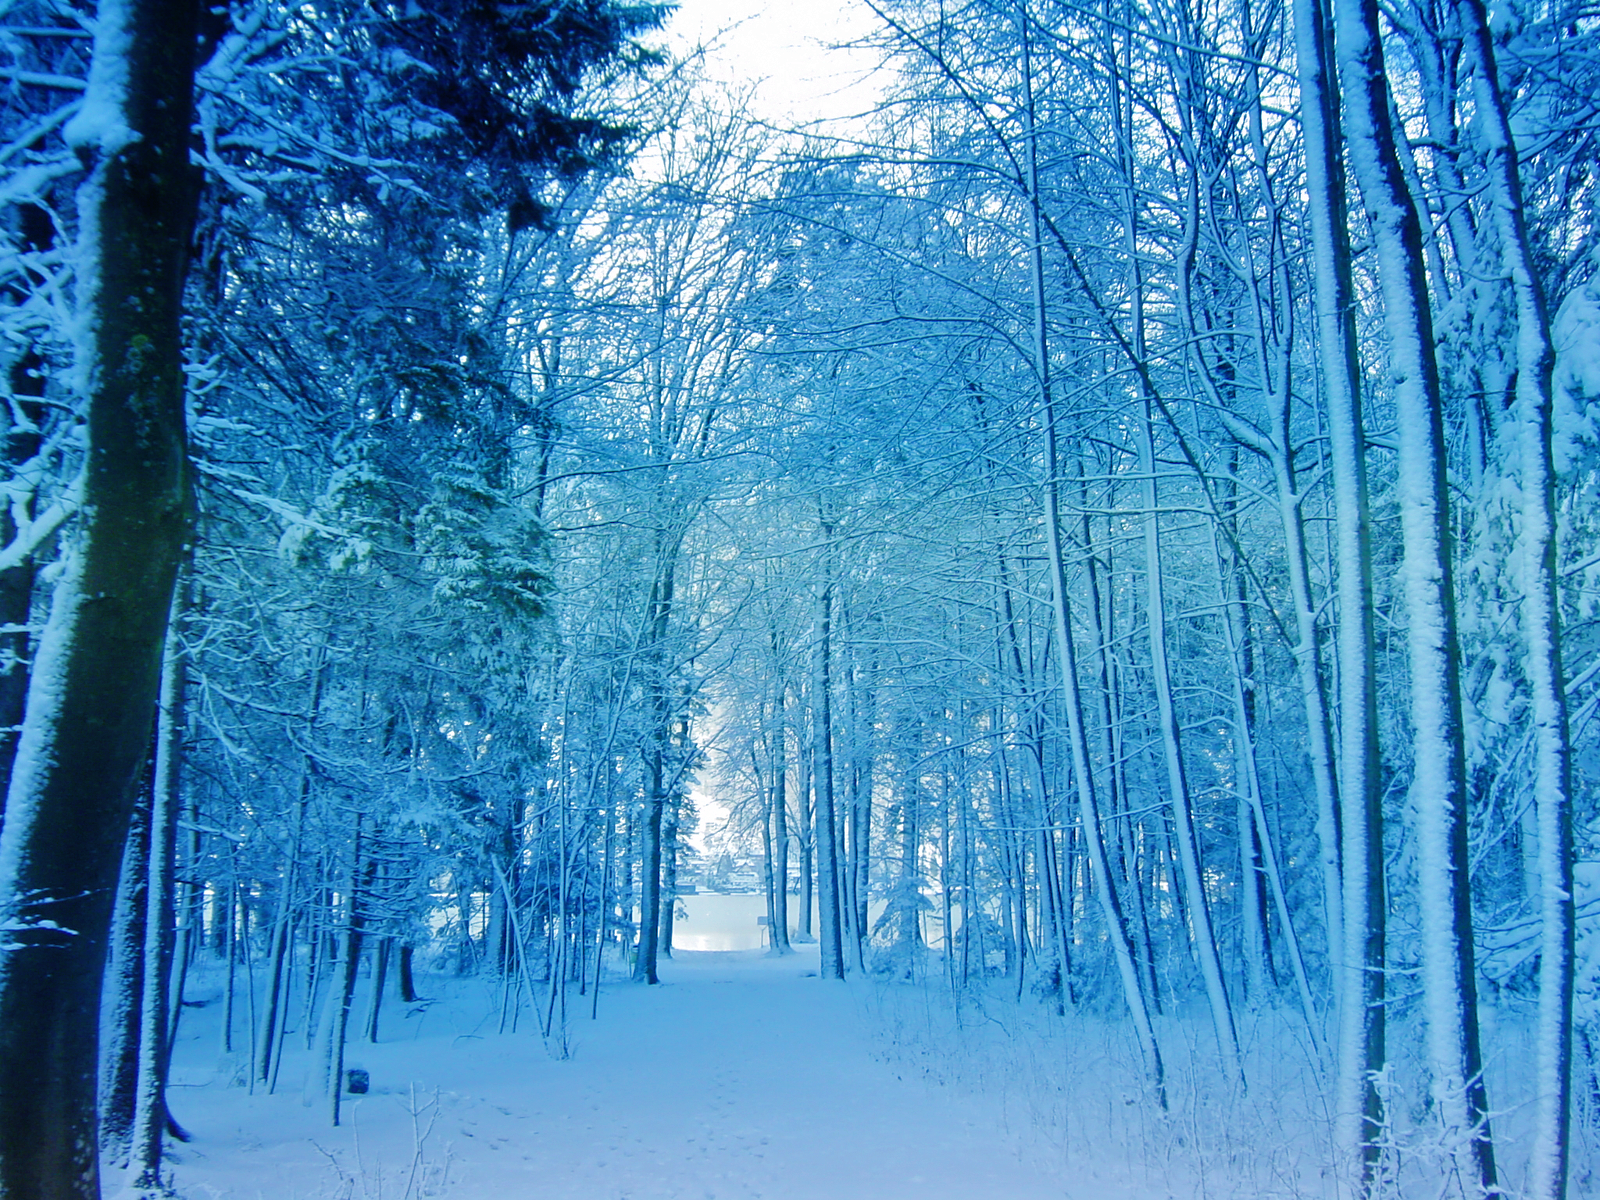 Democratic Forest Snow wallpaper Conservatives Still Did Not Build 1600x1200